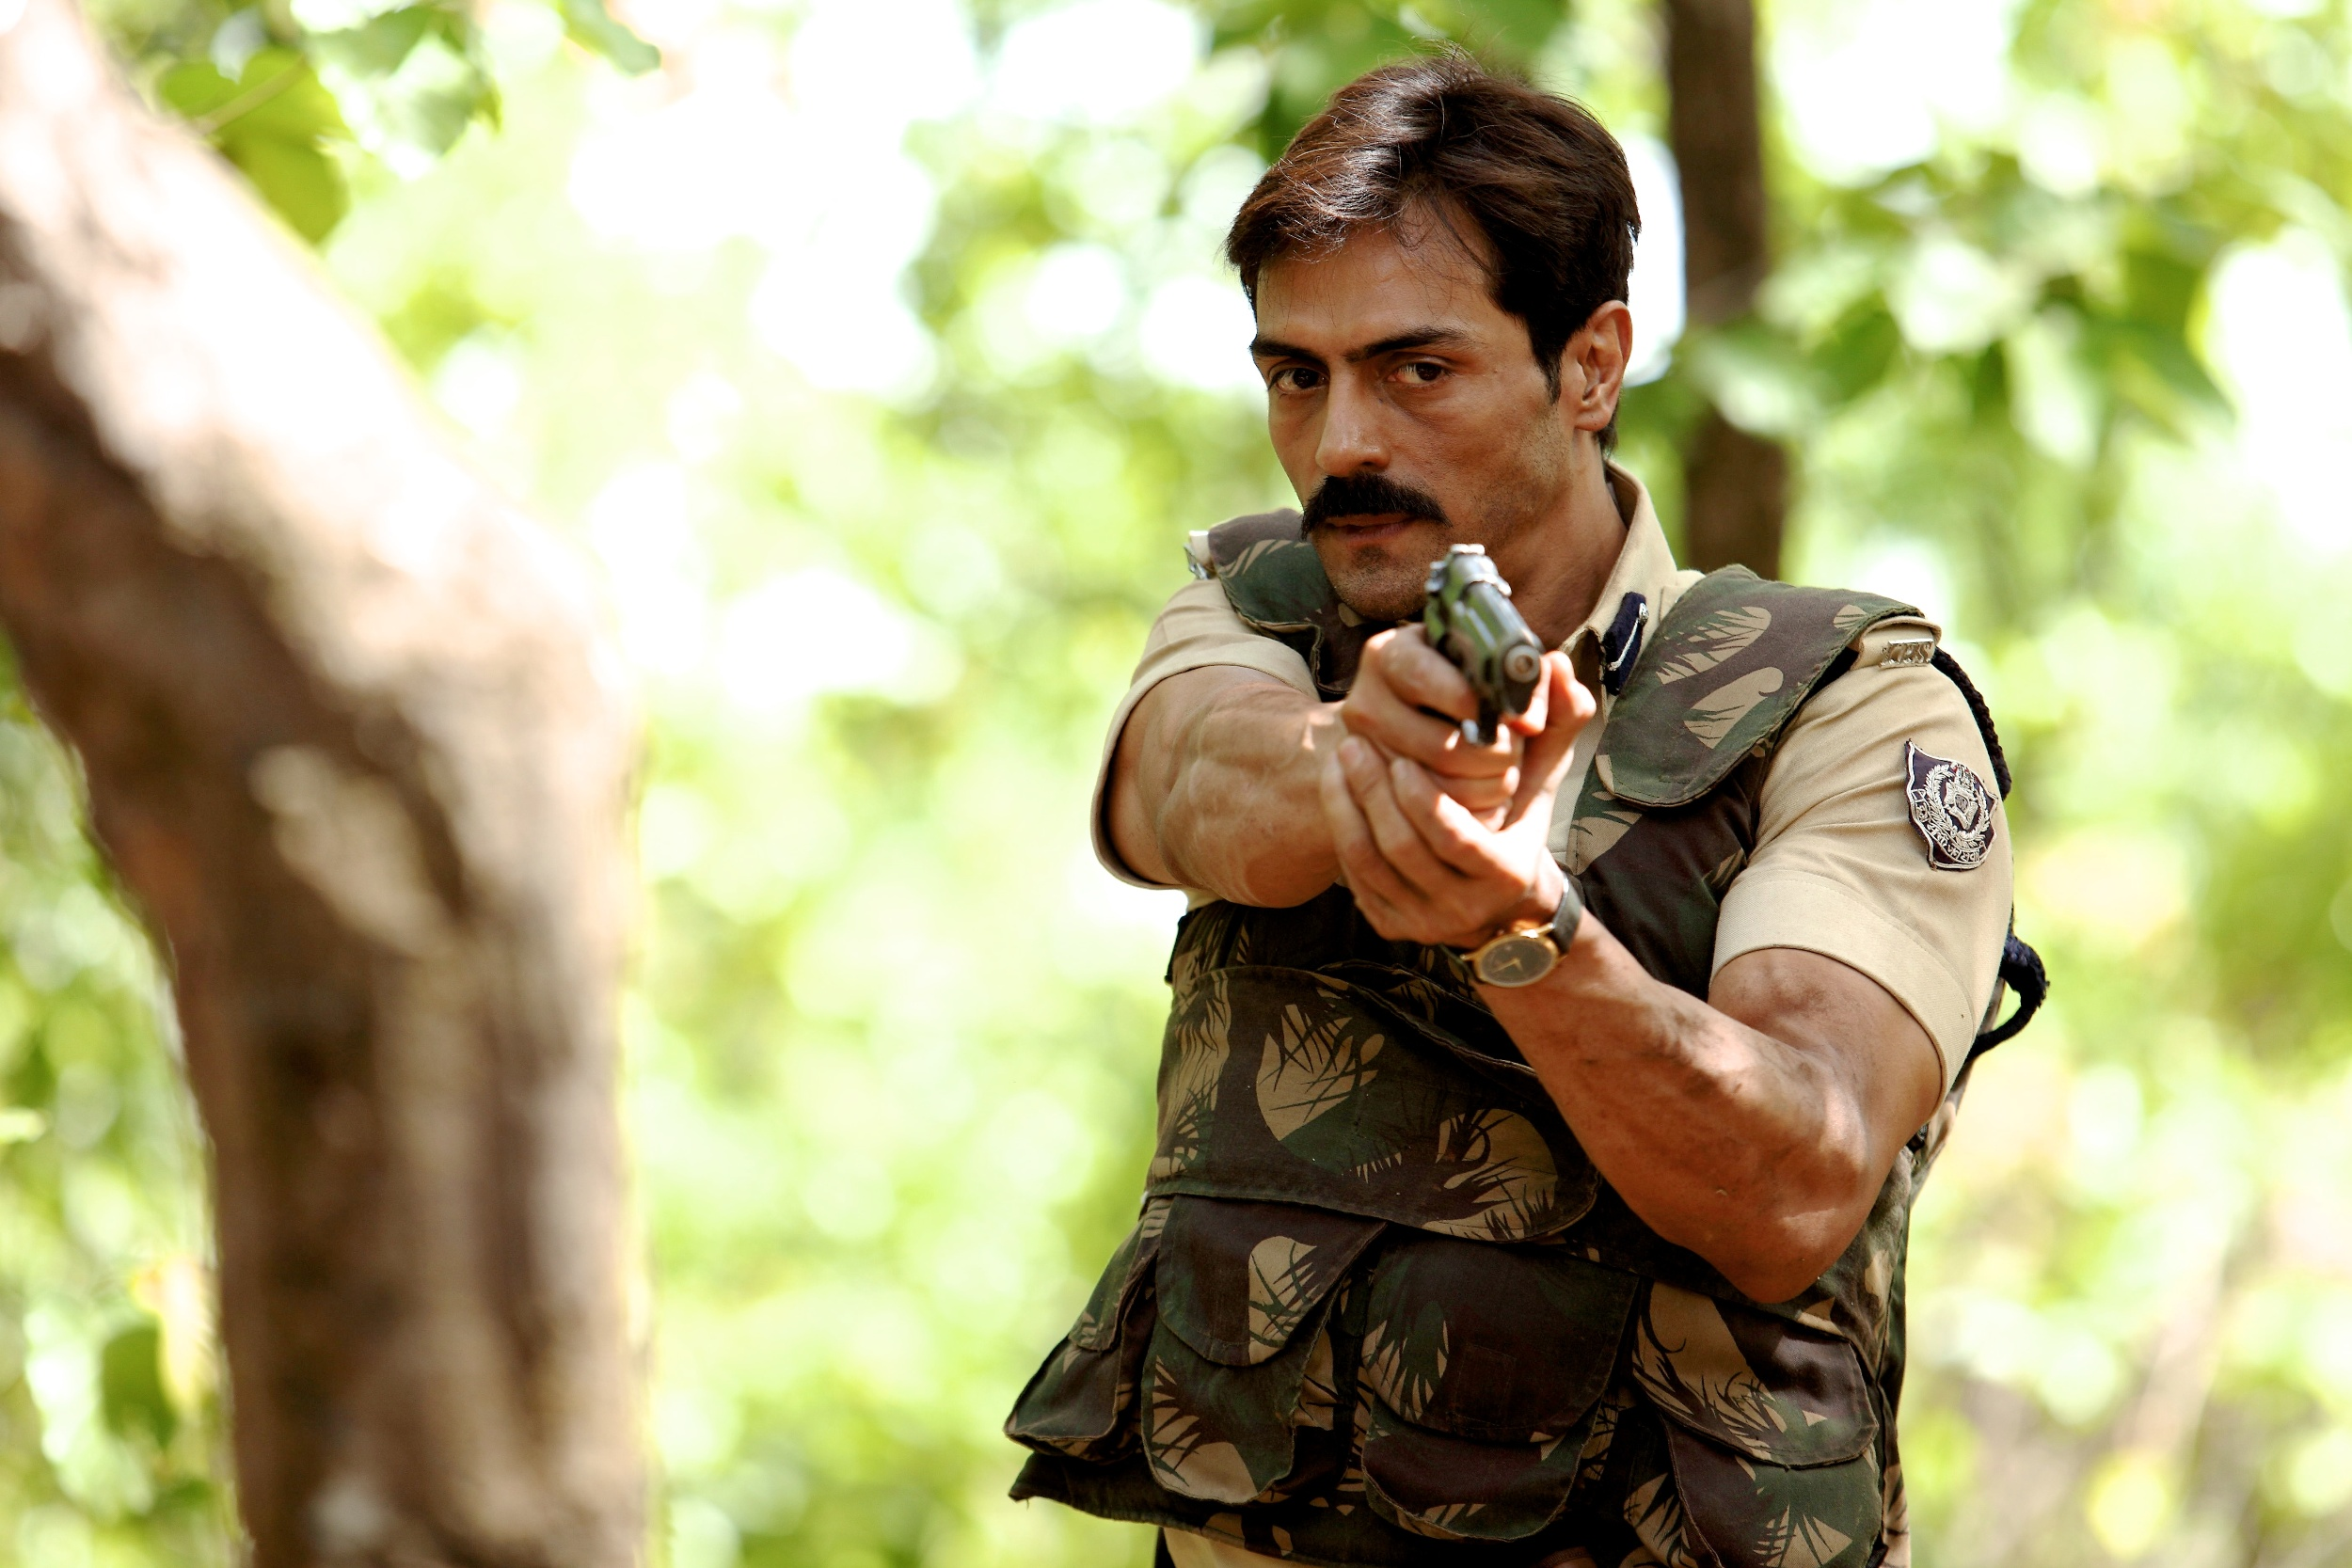 http://www.bhmpics.com/walls/arjun_rampal_in_chakravyuh_movies-other.jpg